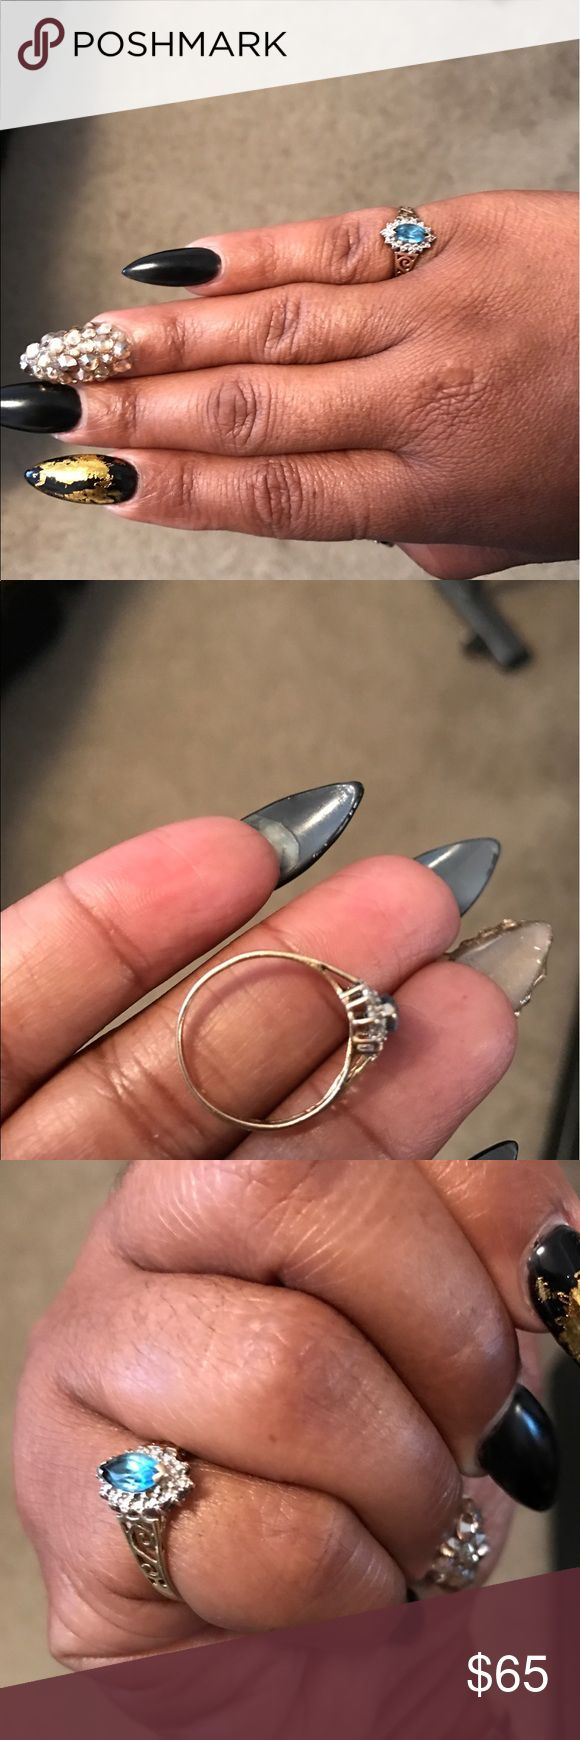 10k ring. Size 6 for sale or trade This is a cute 10k diamond ring. It's loose on my pinky so I think it was a size 6. Decembers birthstone. With a cute antique style. Paid $122 asking $60 or best offer. Real gold. Jewelry Rings